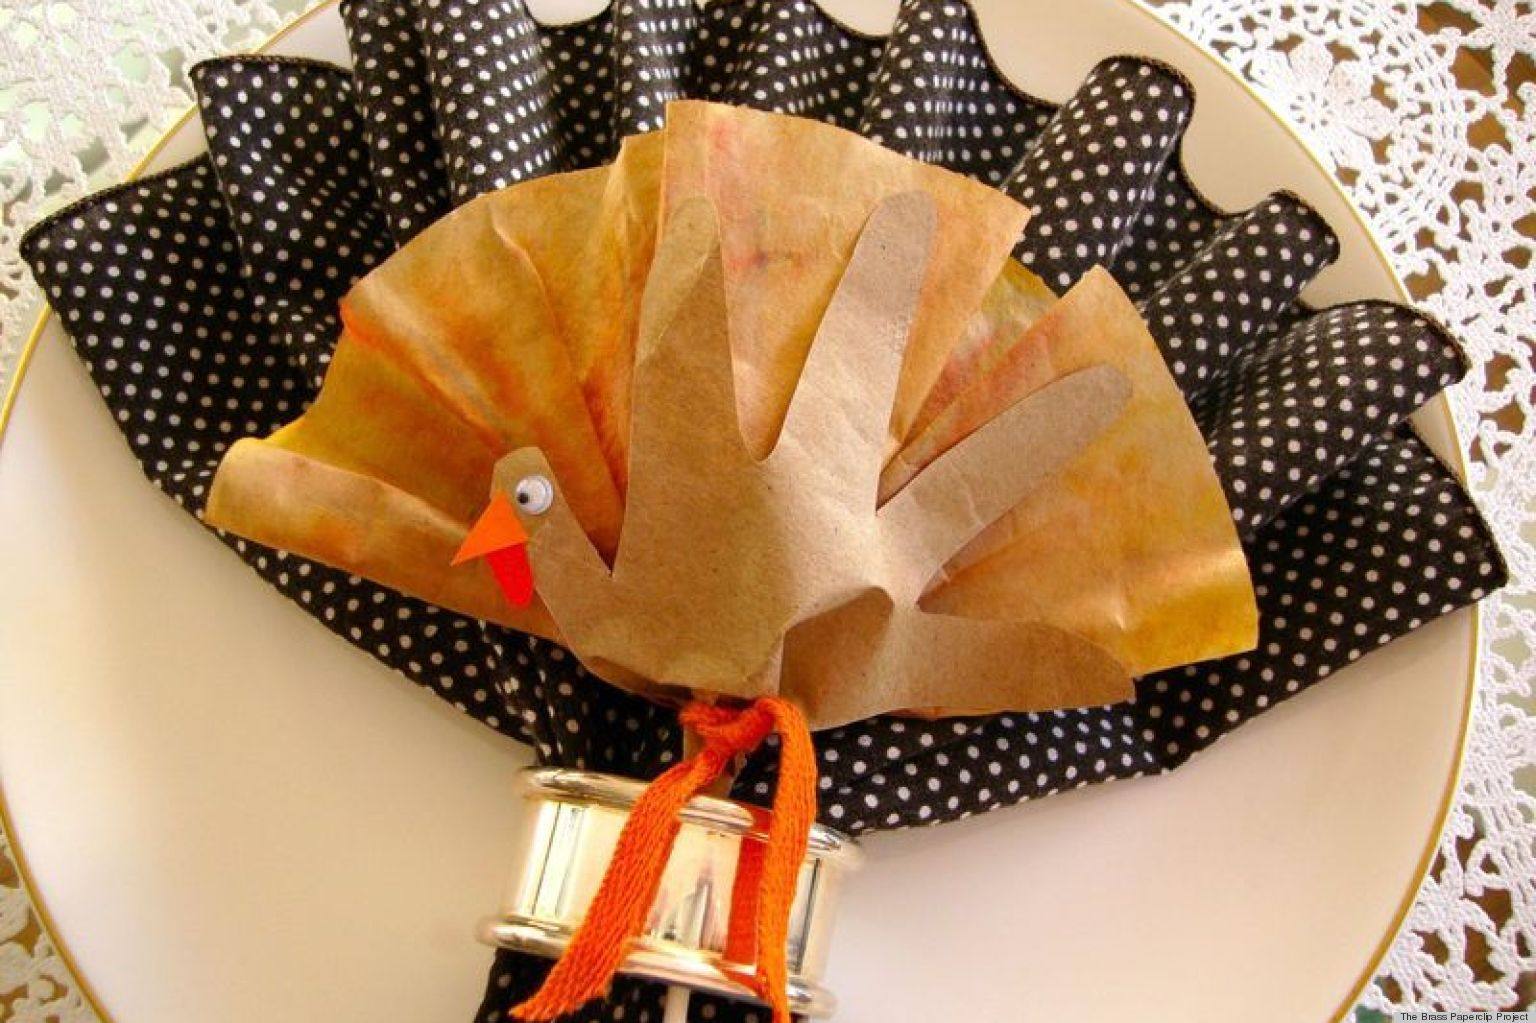 Napkin folding ideas a cute turkey inspired craft for for How to fold napkins into turkeys